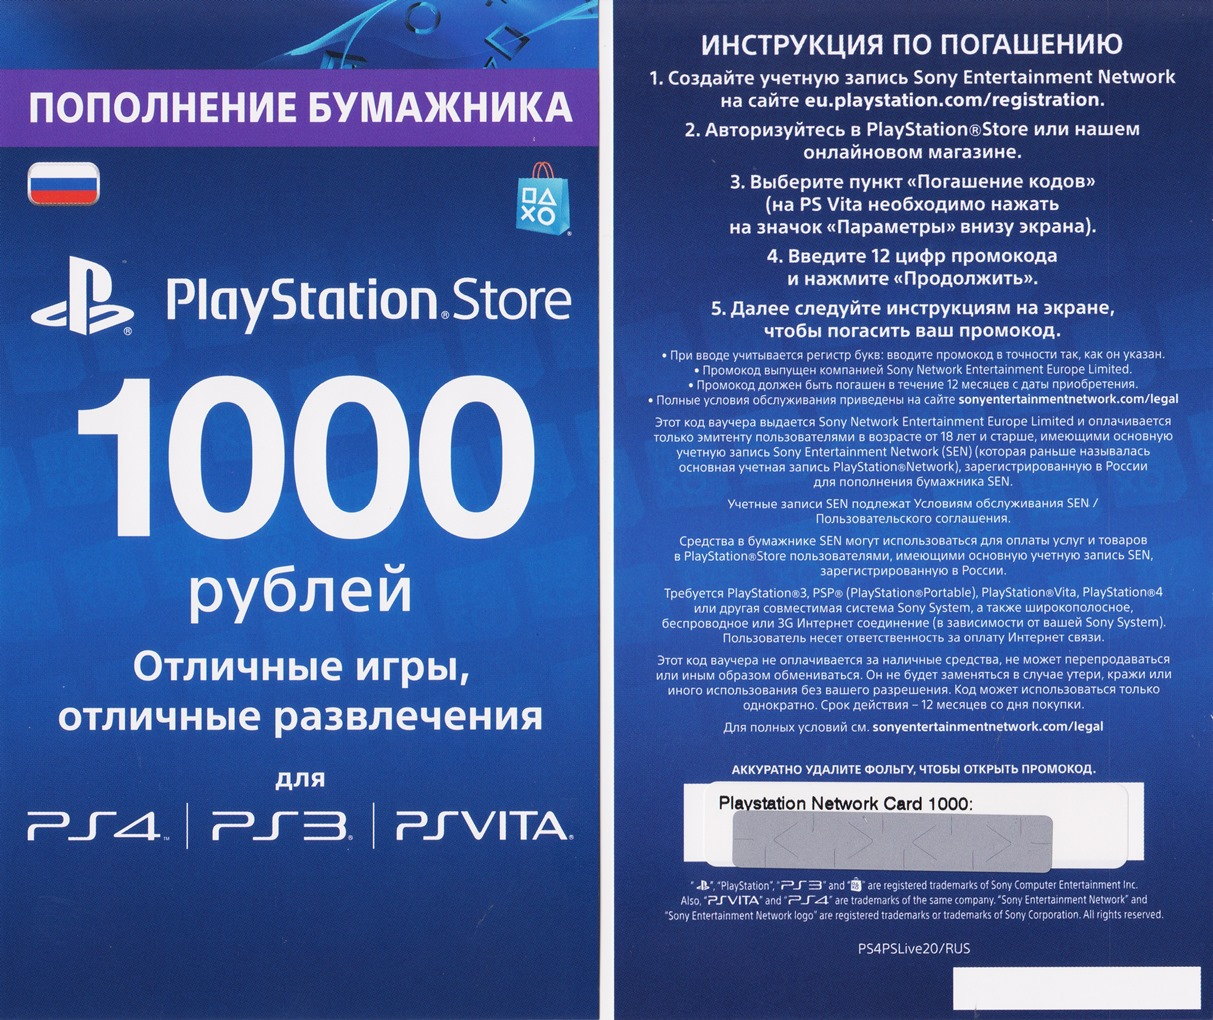 Playstation Network (PSN) - RUS - 1000 rubles - (Photo)